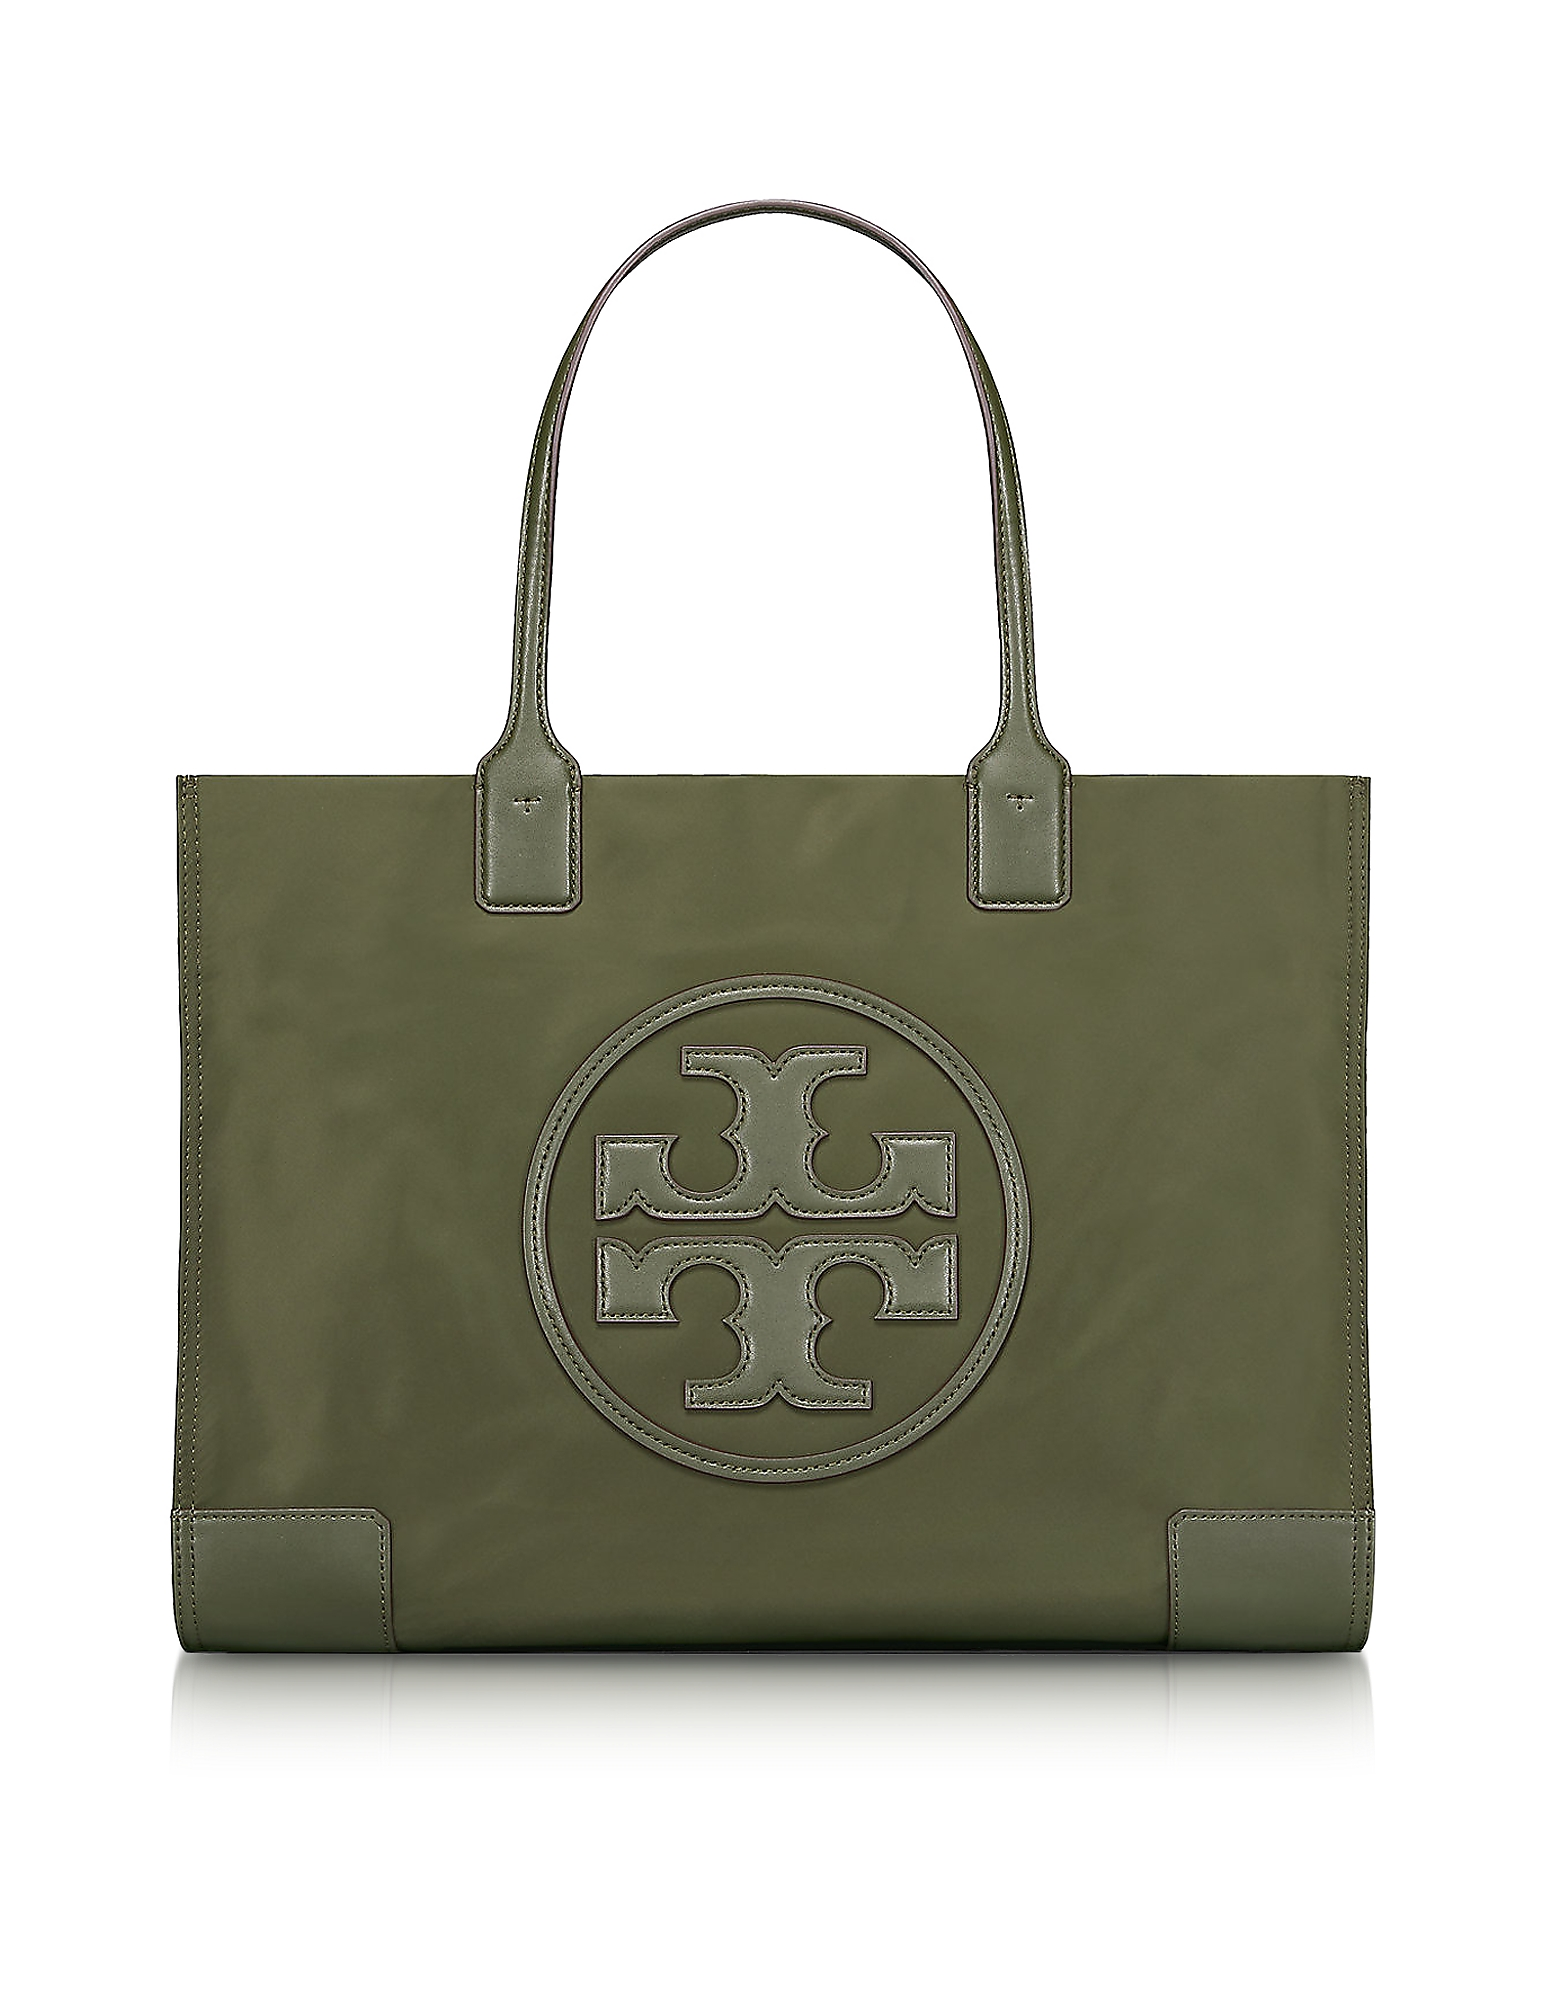 Tory Burch Handbags, Nylon Ella Tote Bag